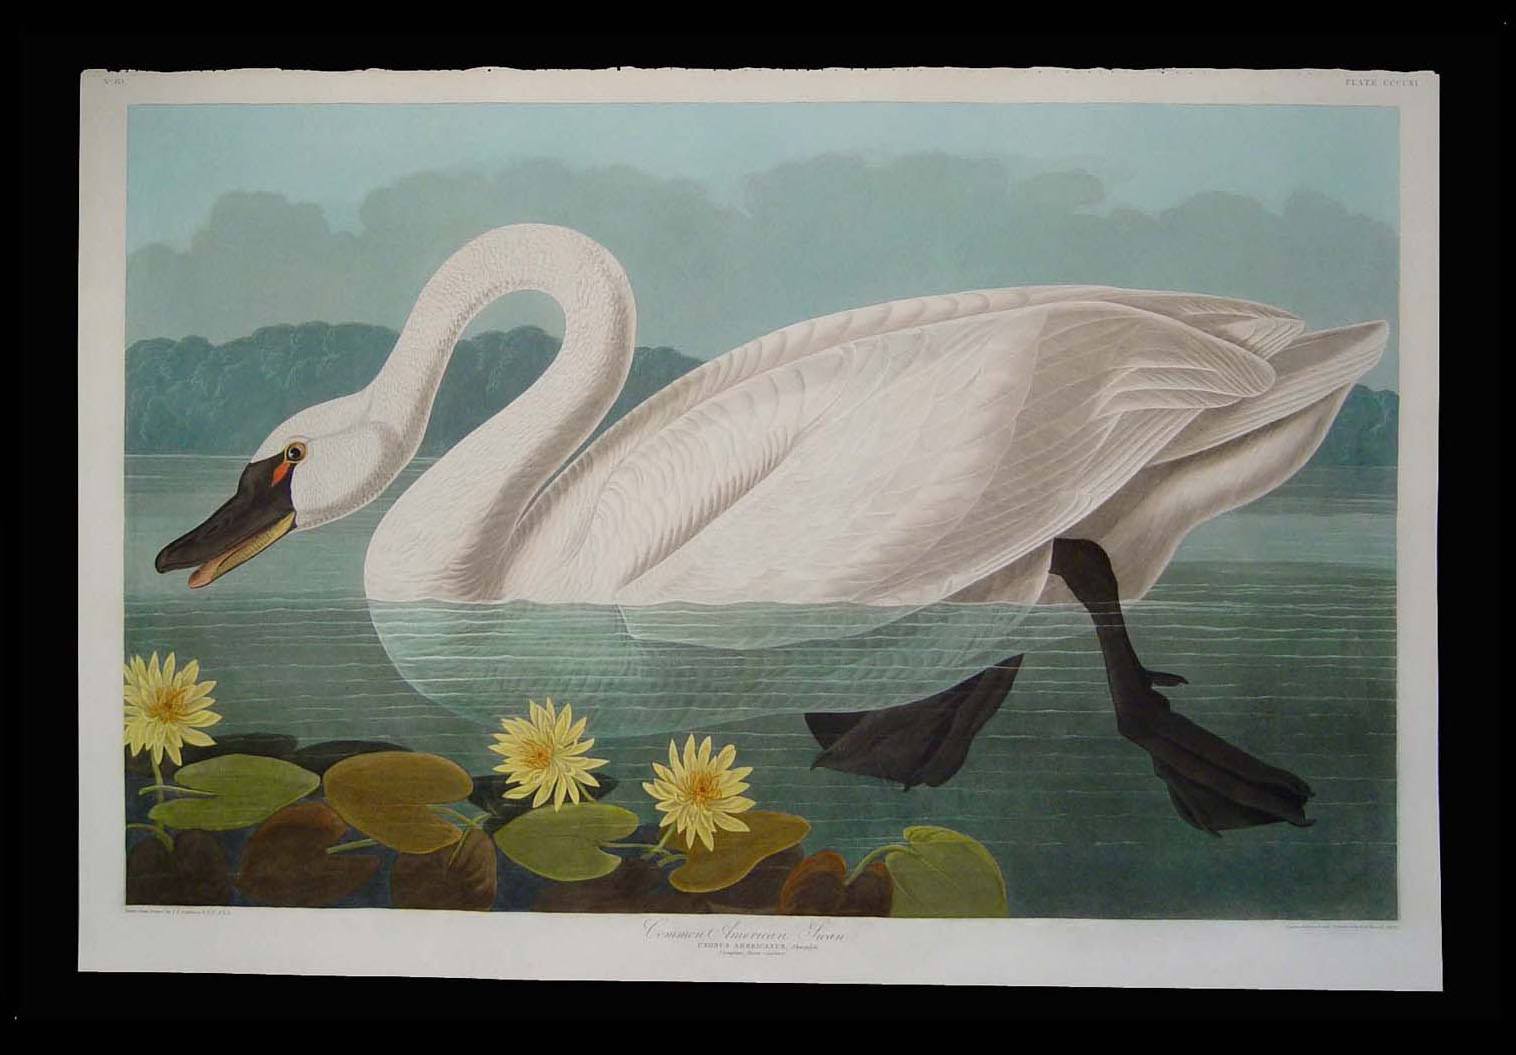 Audubon Swan After.jpg